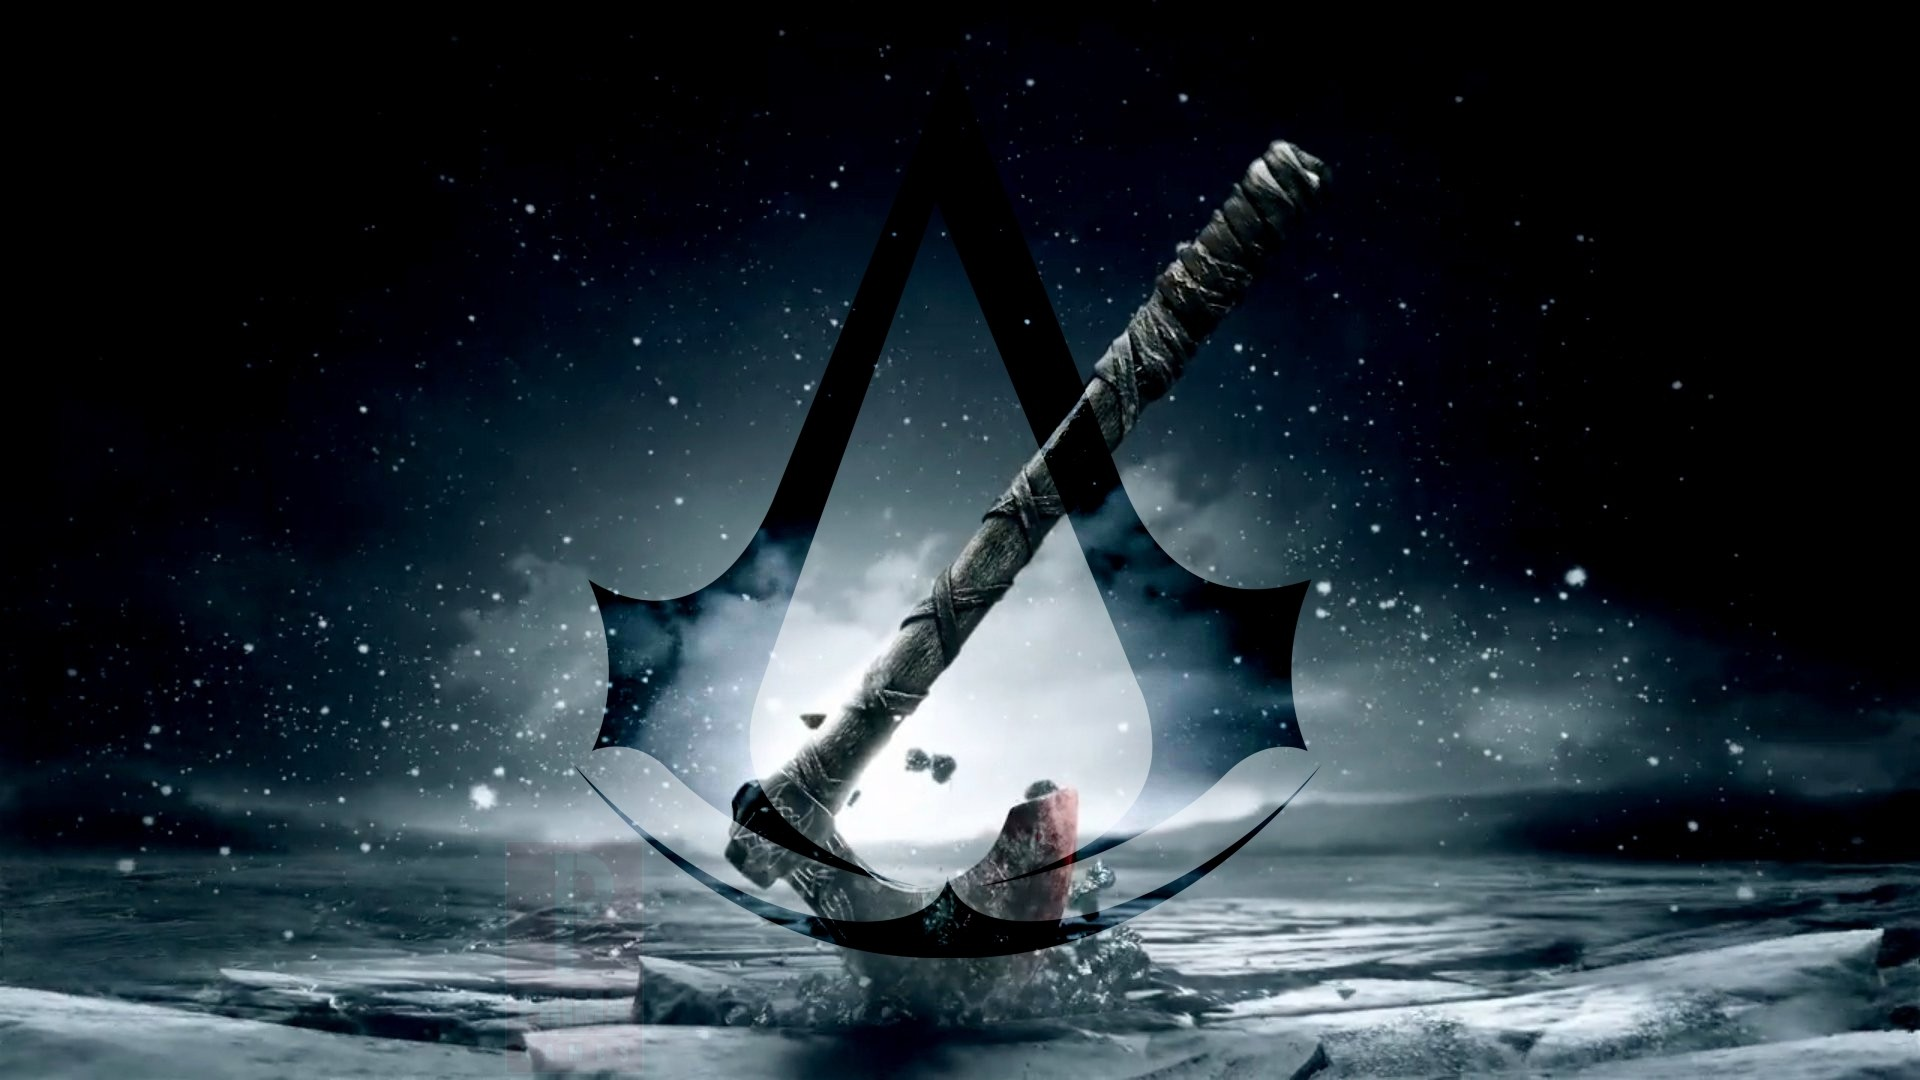 Assassin S Creed Valhalla Wallpapers 18 Images Wallpaperboat